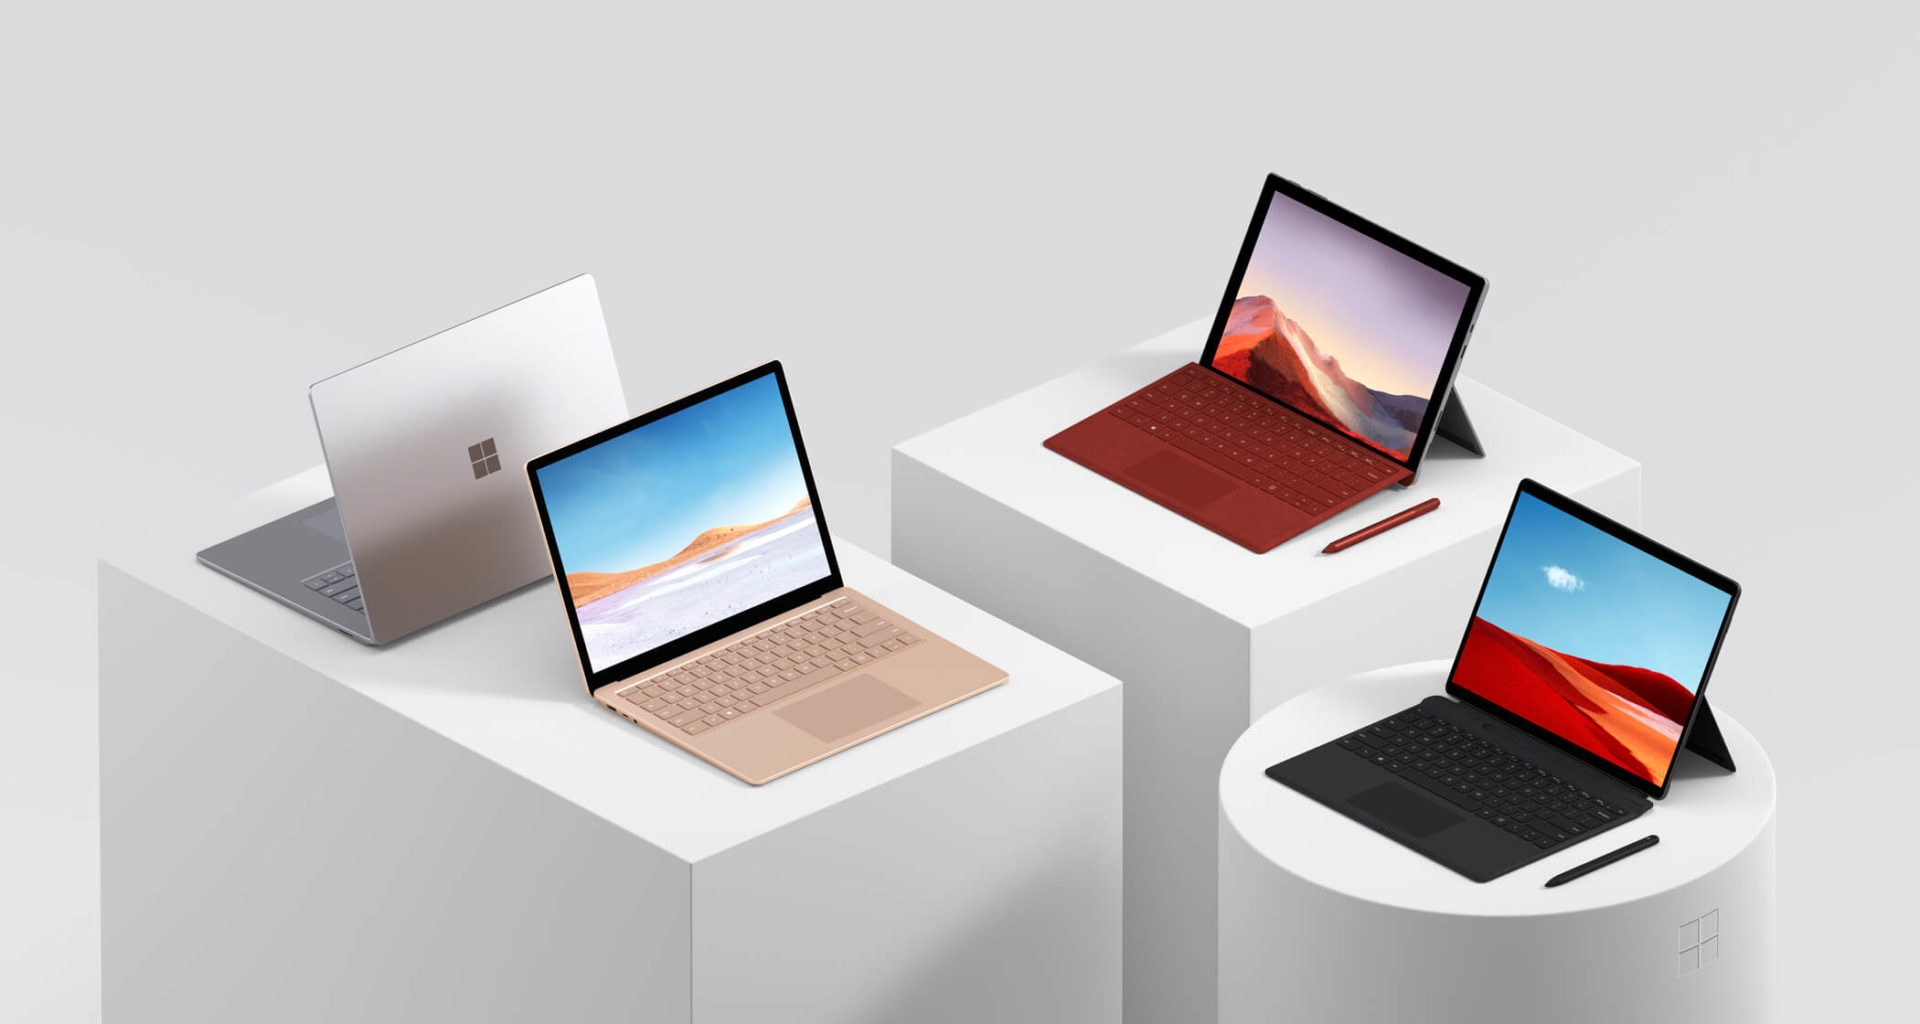 Microsoft announces Surface Laptop 3, Surface Pro 7, and Surface Pro X